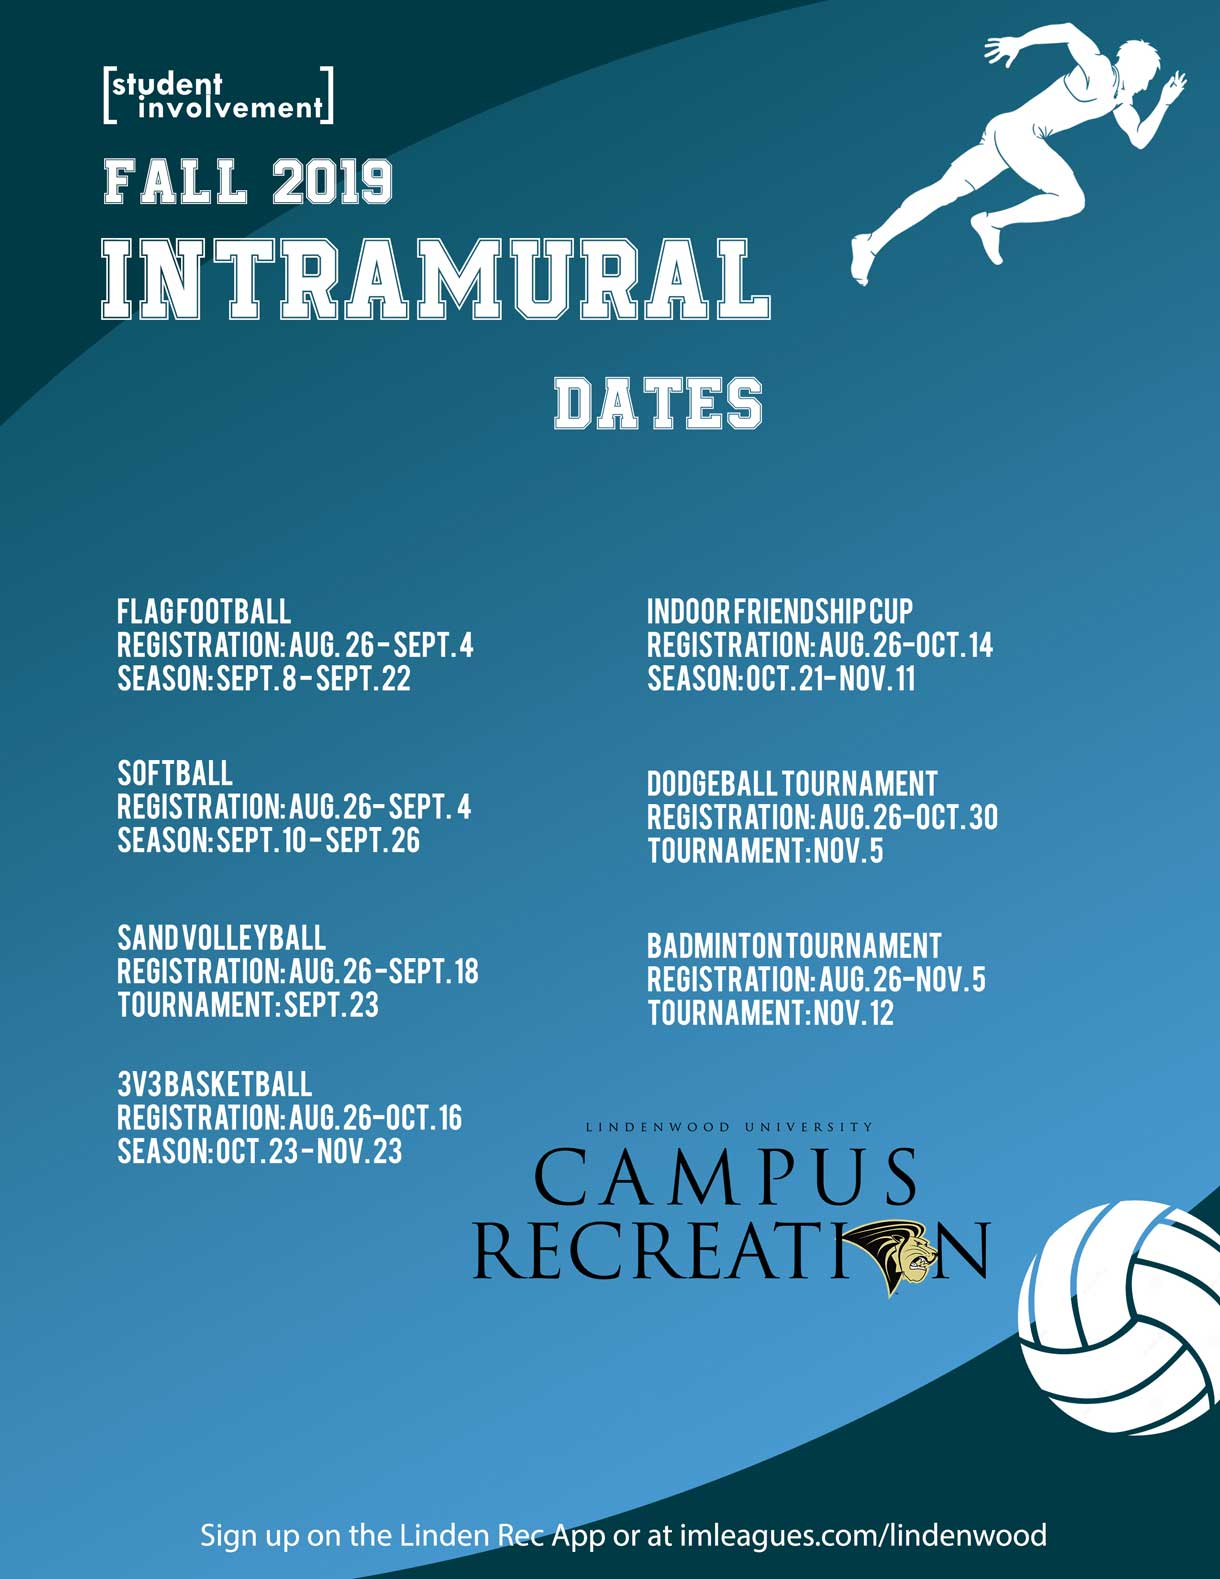 Fall 2019 Intramural Dates Graphic